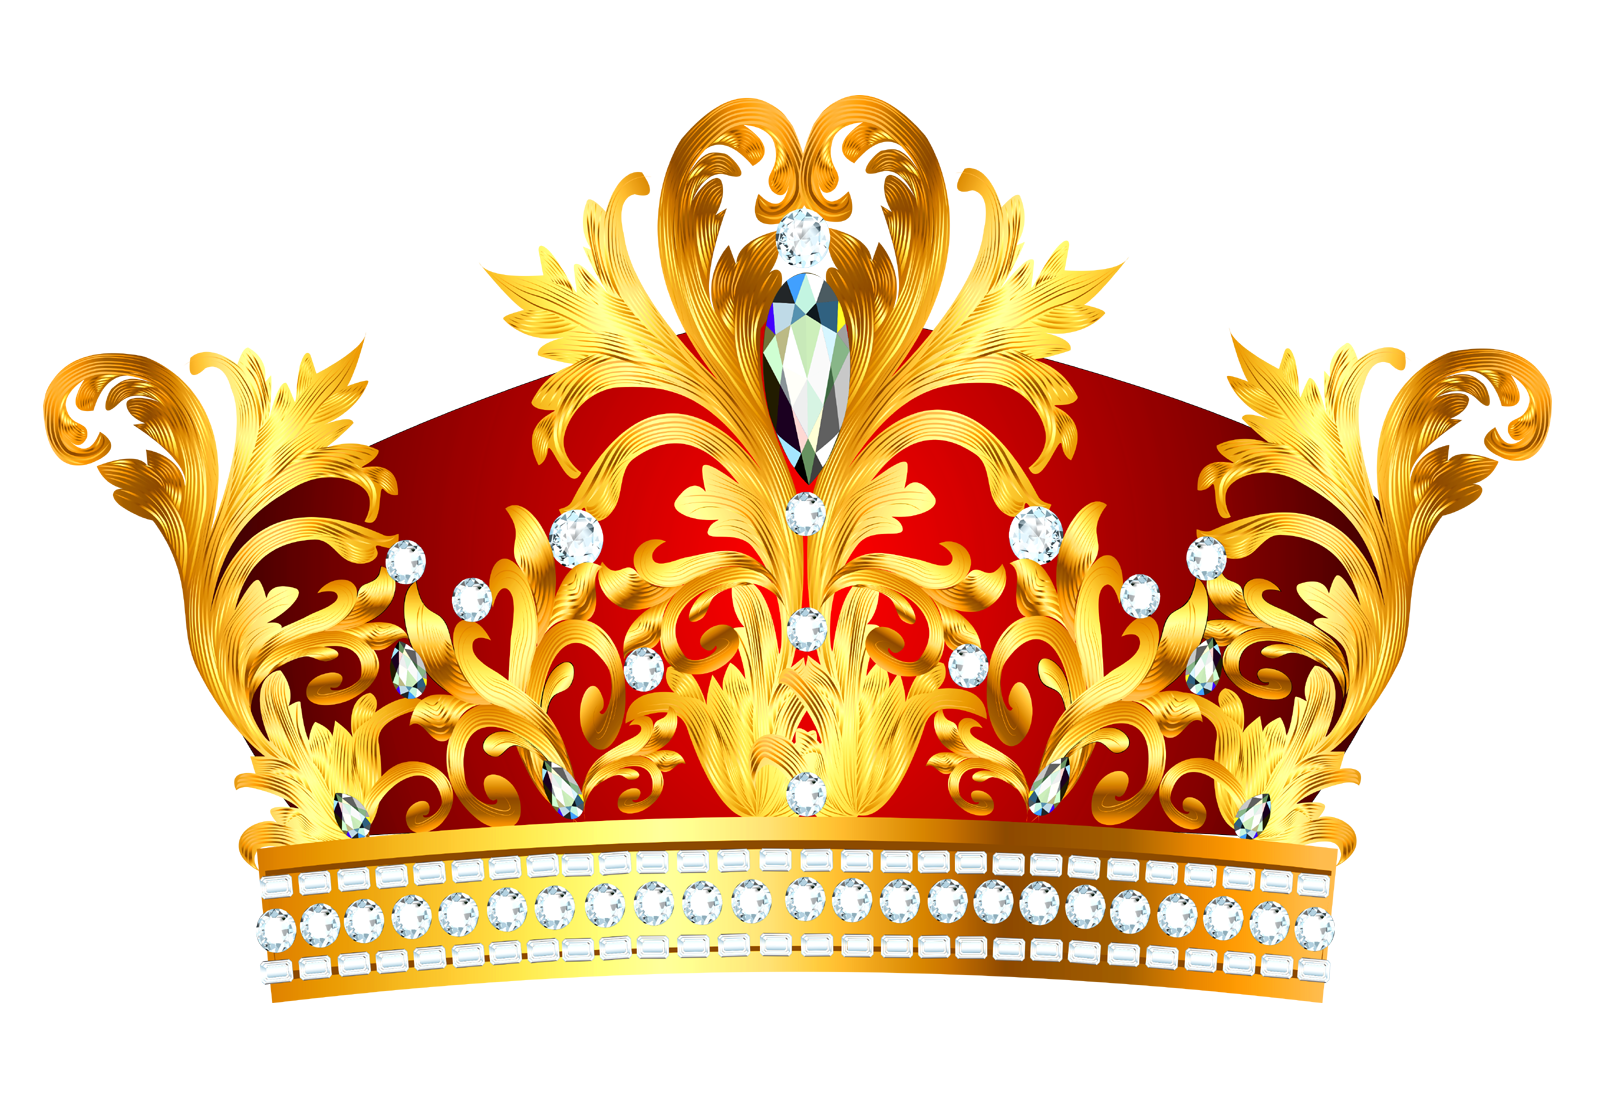 Crowns clipart rainbow. Crown transparent images free